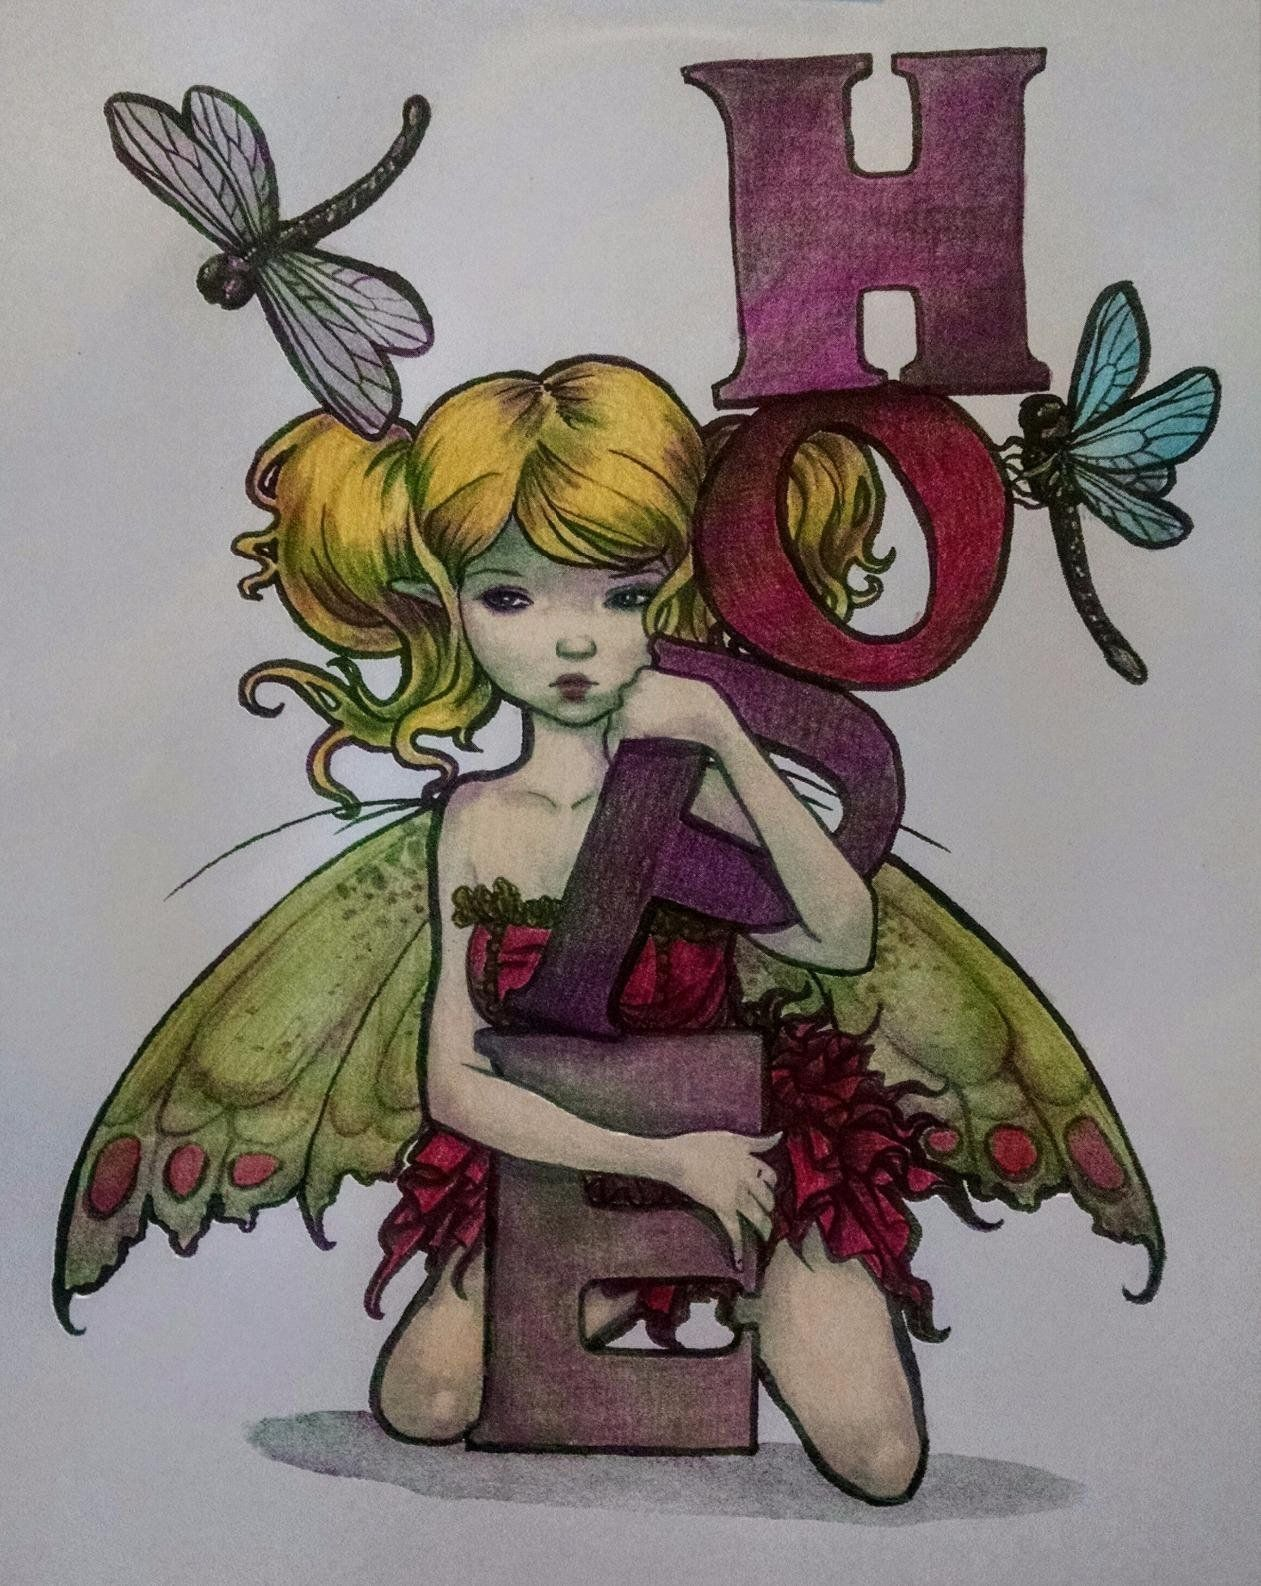 Fairy art coloring book by selina fenech - Amazon Com Fairy Art Grayscale Coloring Edition Grayscale Coloring Books By Selina